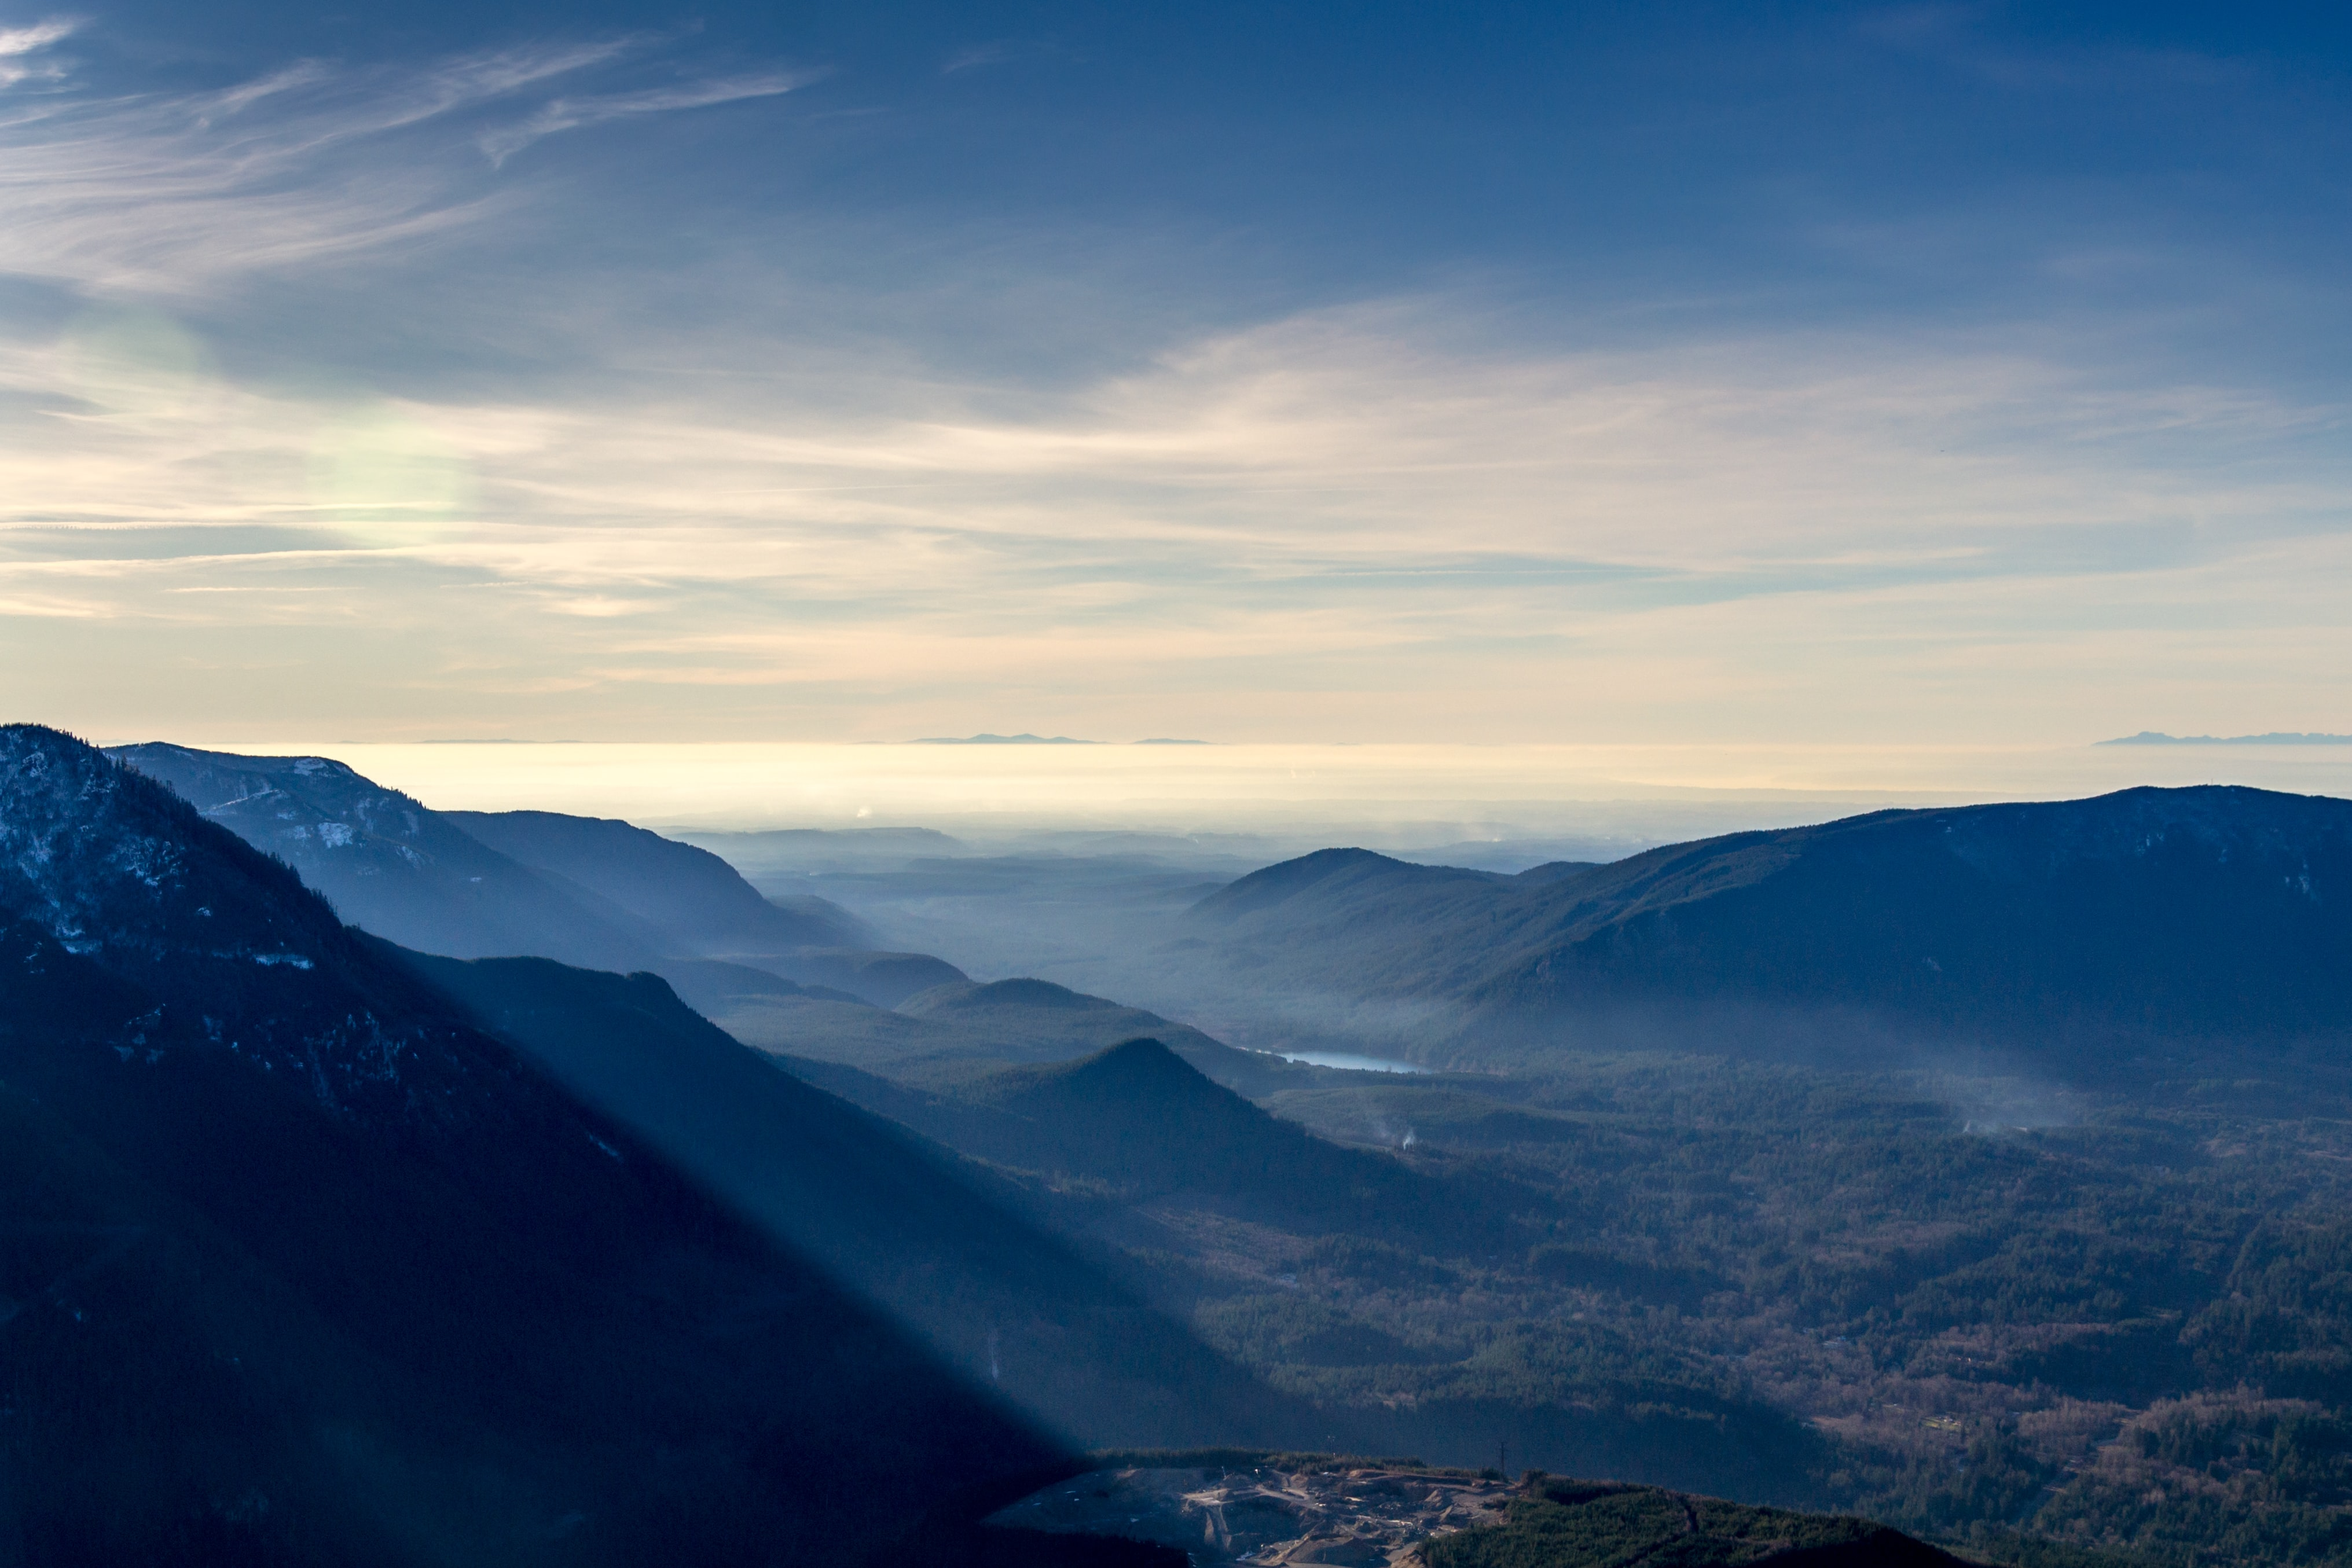 mountain covered by fogs